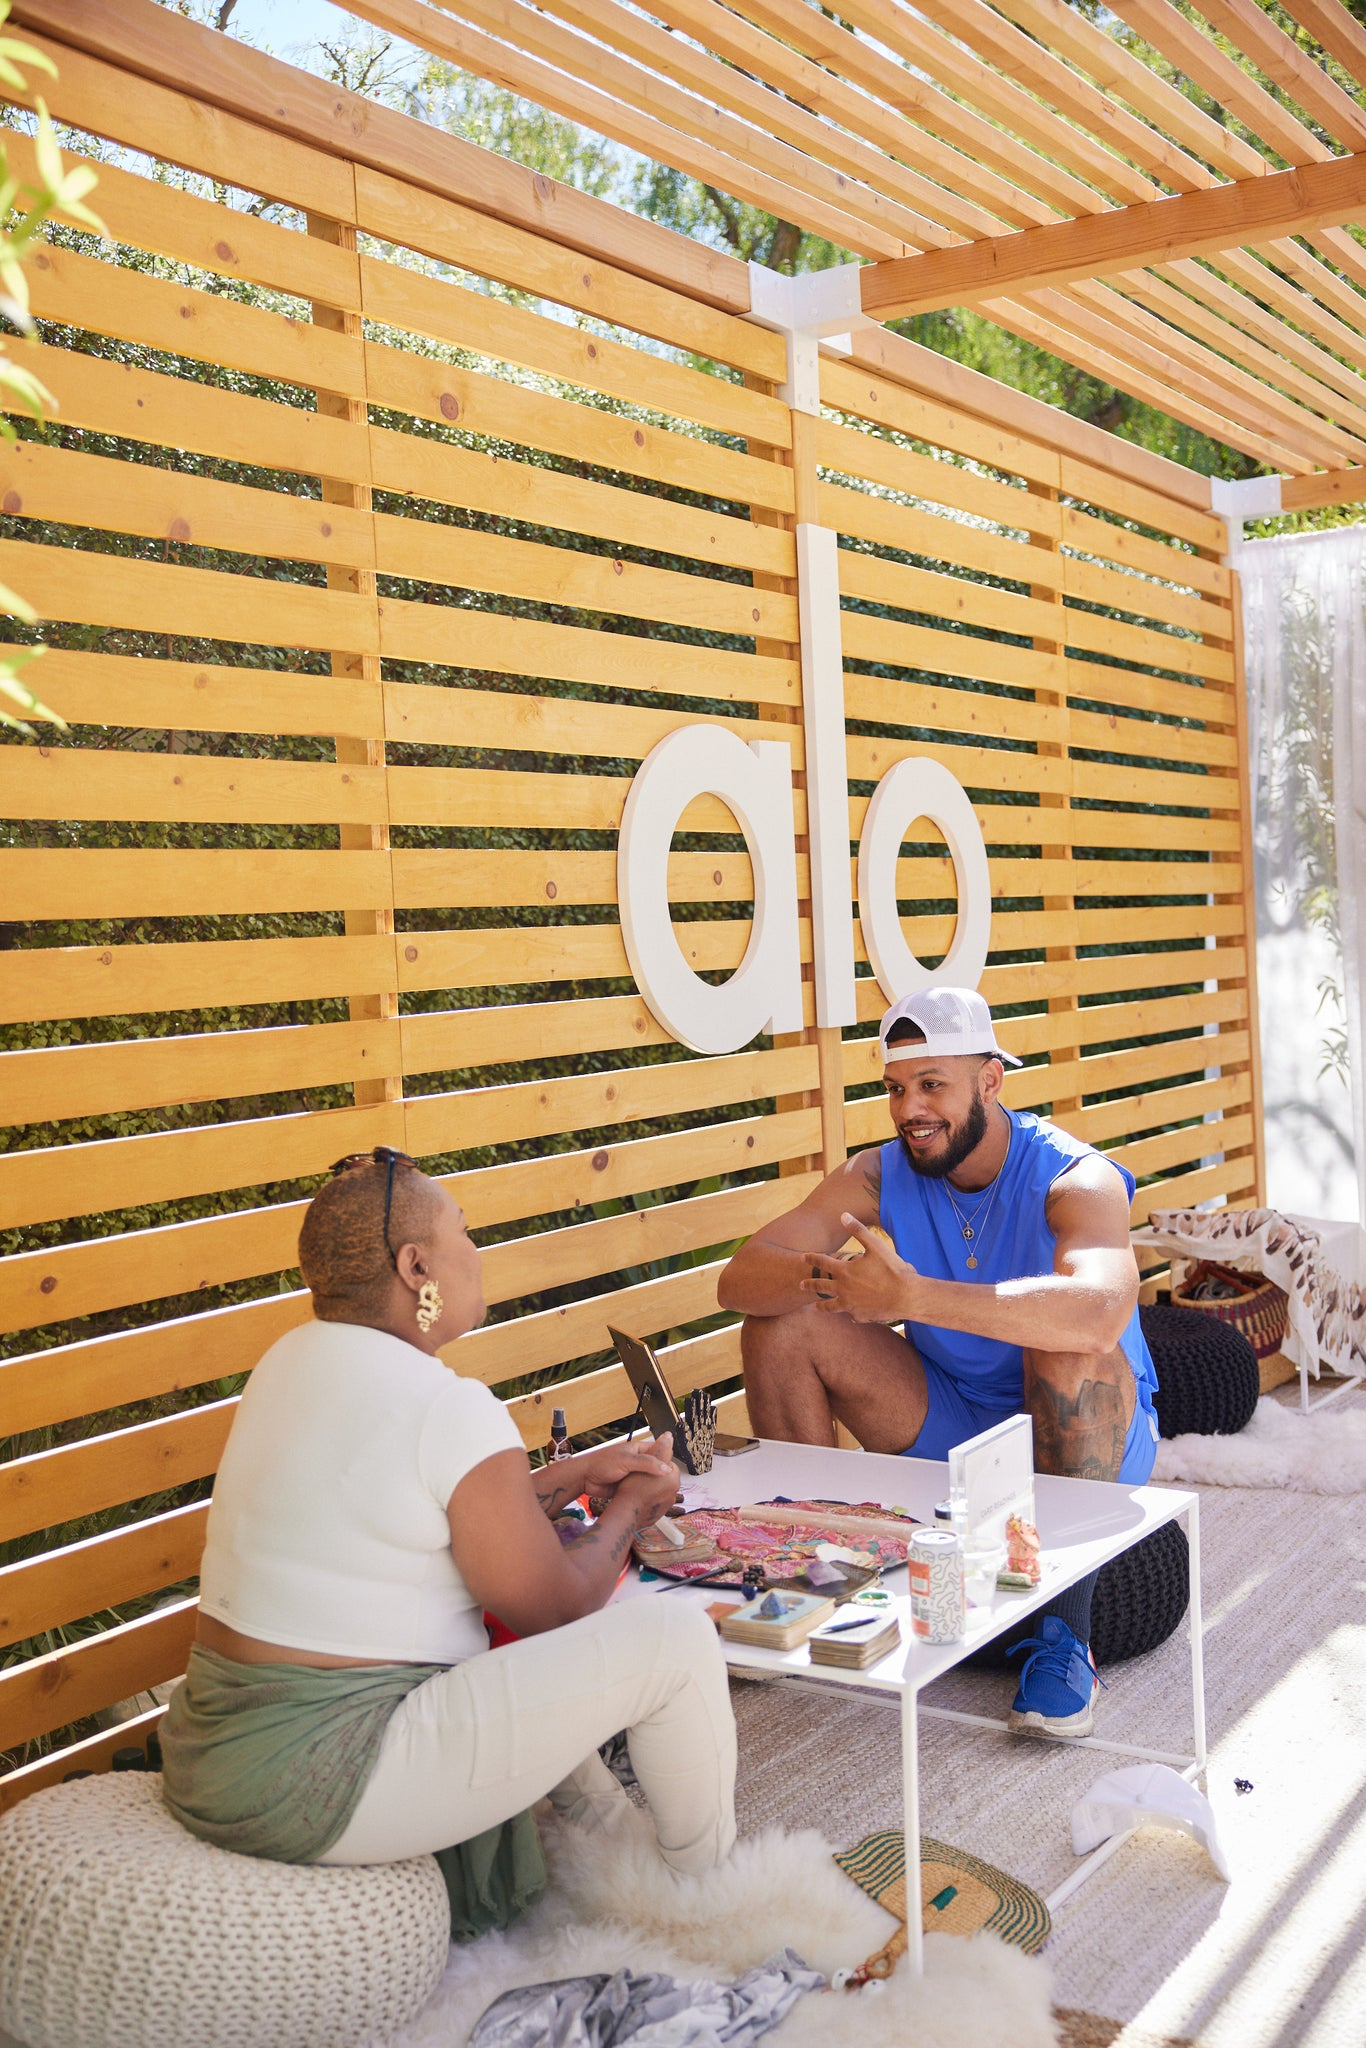 A man participating in a wellness activity within the Mindful Masters cabanas.